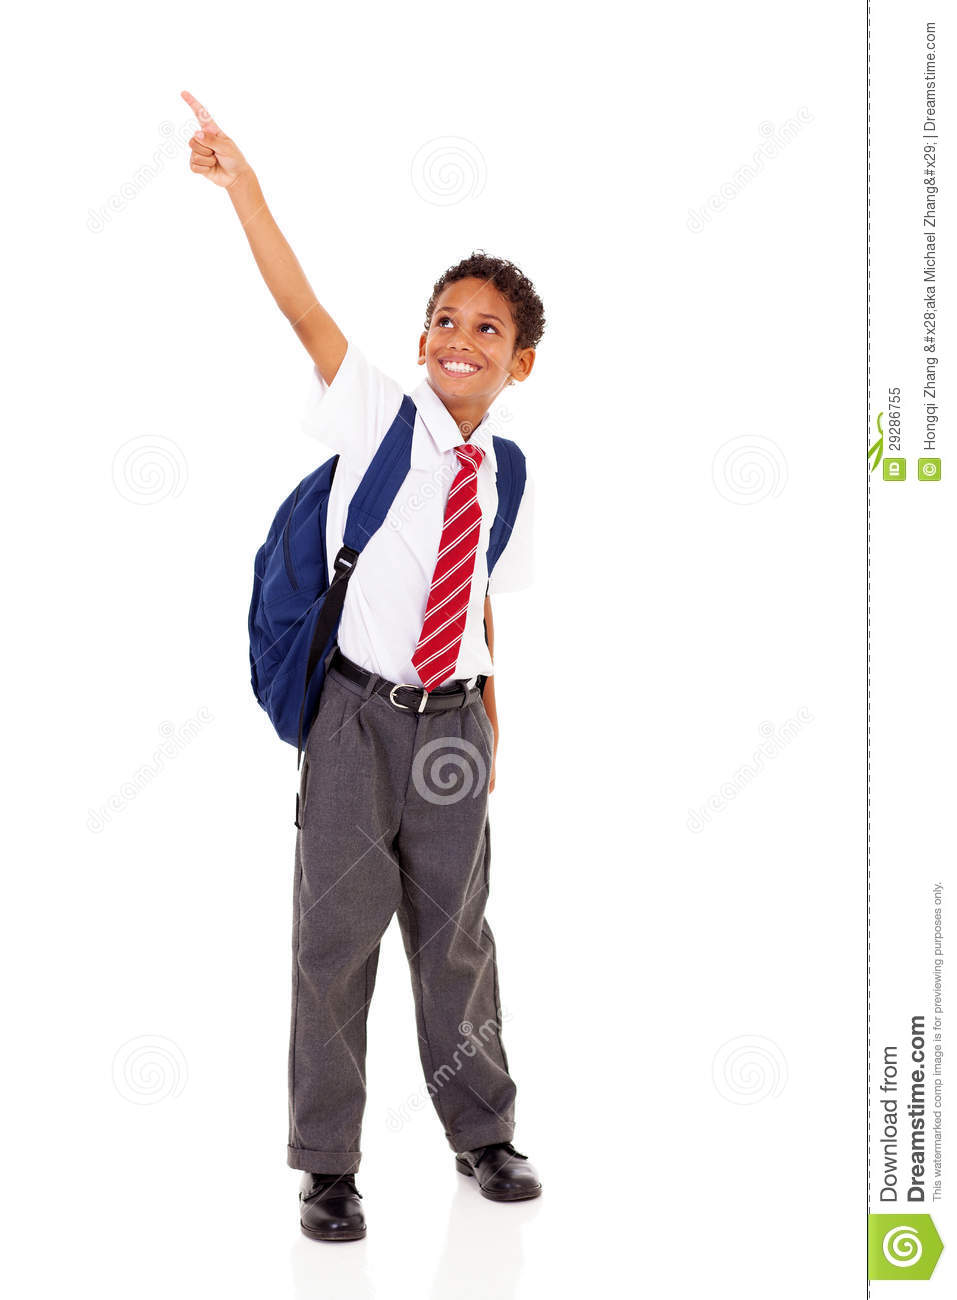 Primary Schoolboy Pointing Royalty Free Stock Photo - Image: 29286755